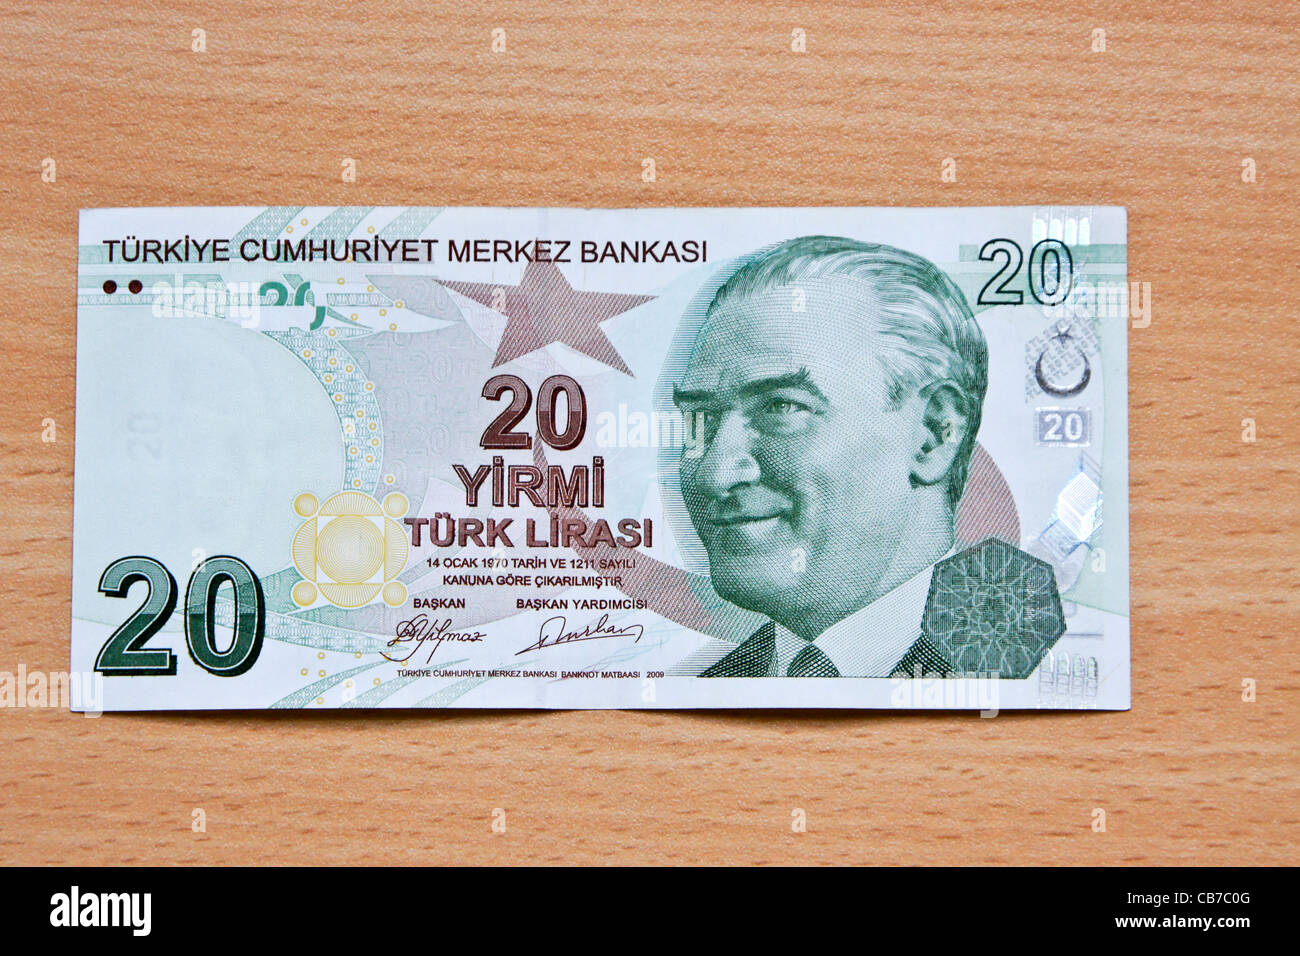 Turkish money (lira) Stock Photo